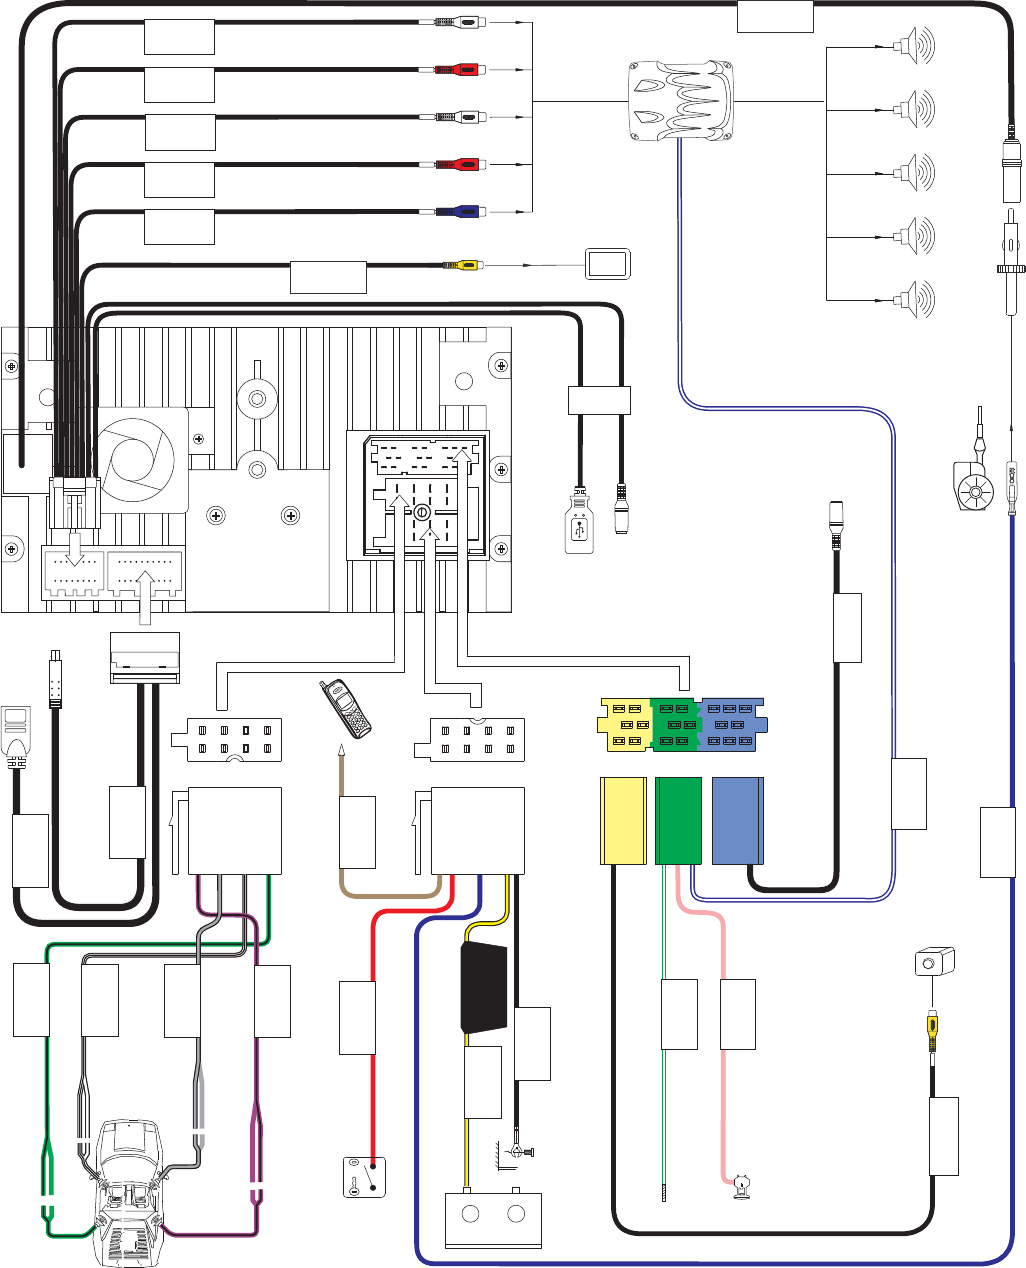 34fbcac4 7bef 4eb8 b34c 690a937048d0 bg4 jensen wiring diagram jensen vm9215bt update \u2022 wiring diagrams j jensen vm9214 wiring harness at reclaimingppi.co